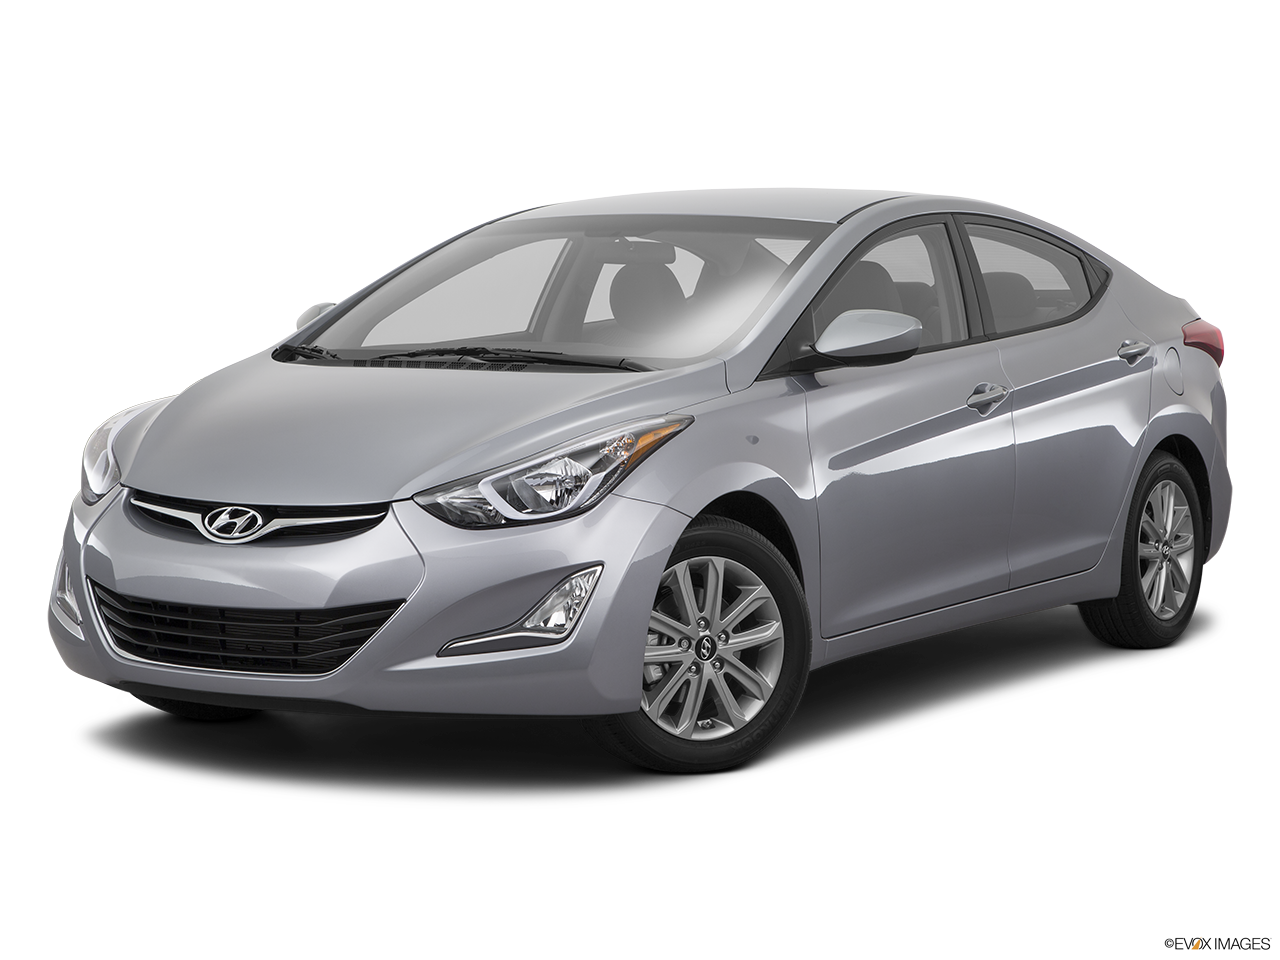 2016 hyundai elantra trend car gallery. Black Bedroom Furniture Sets. Home Design Ideas